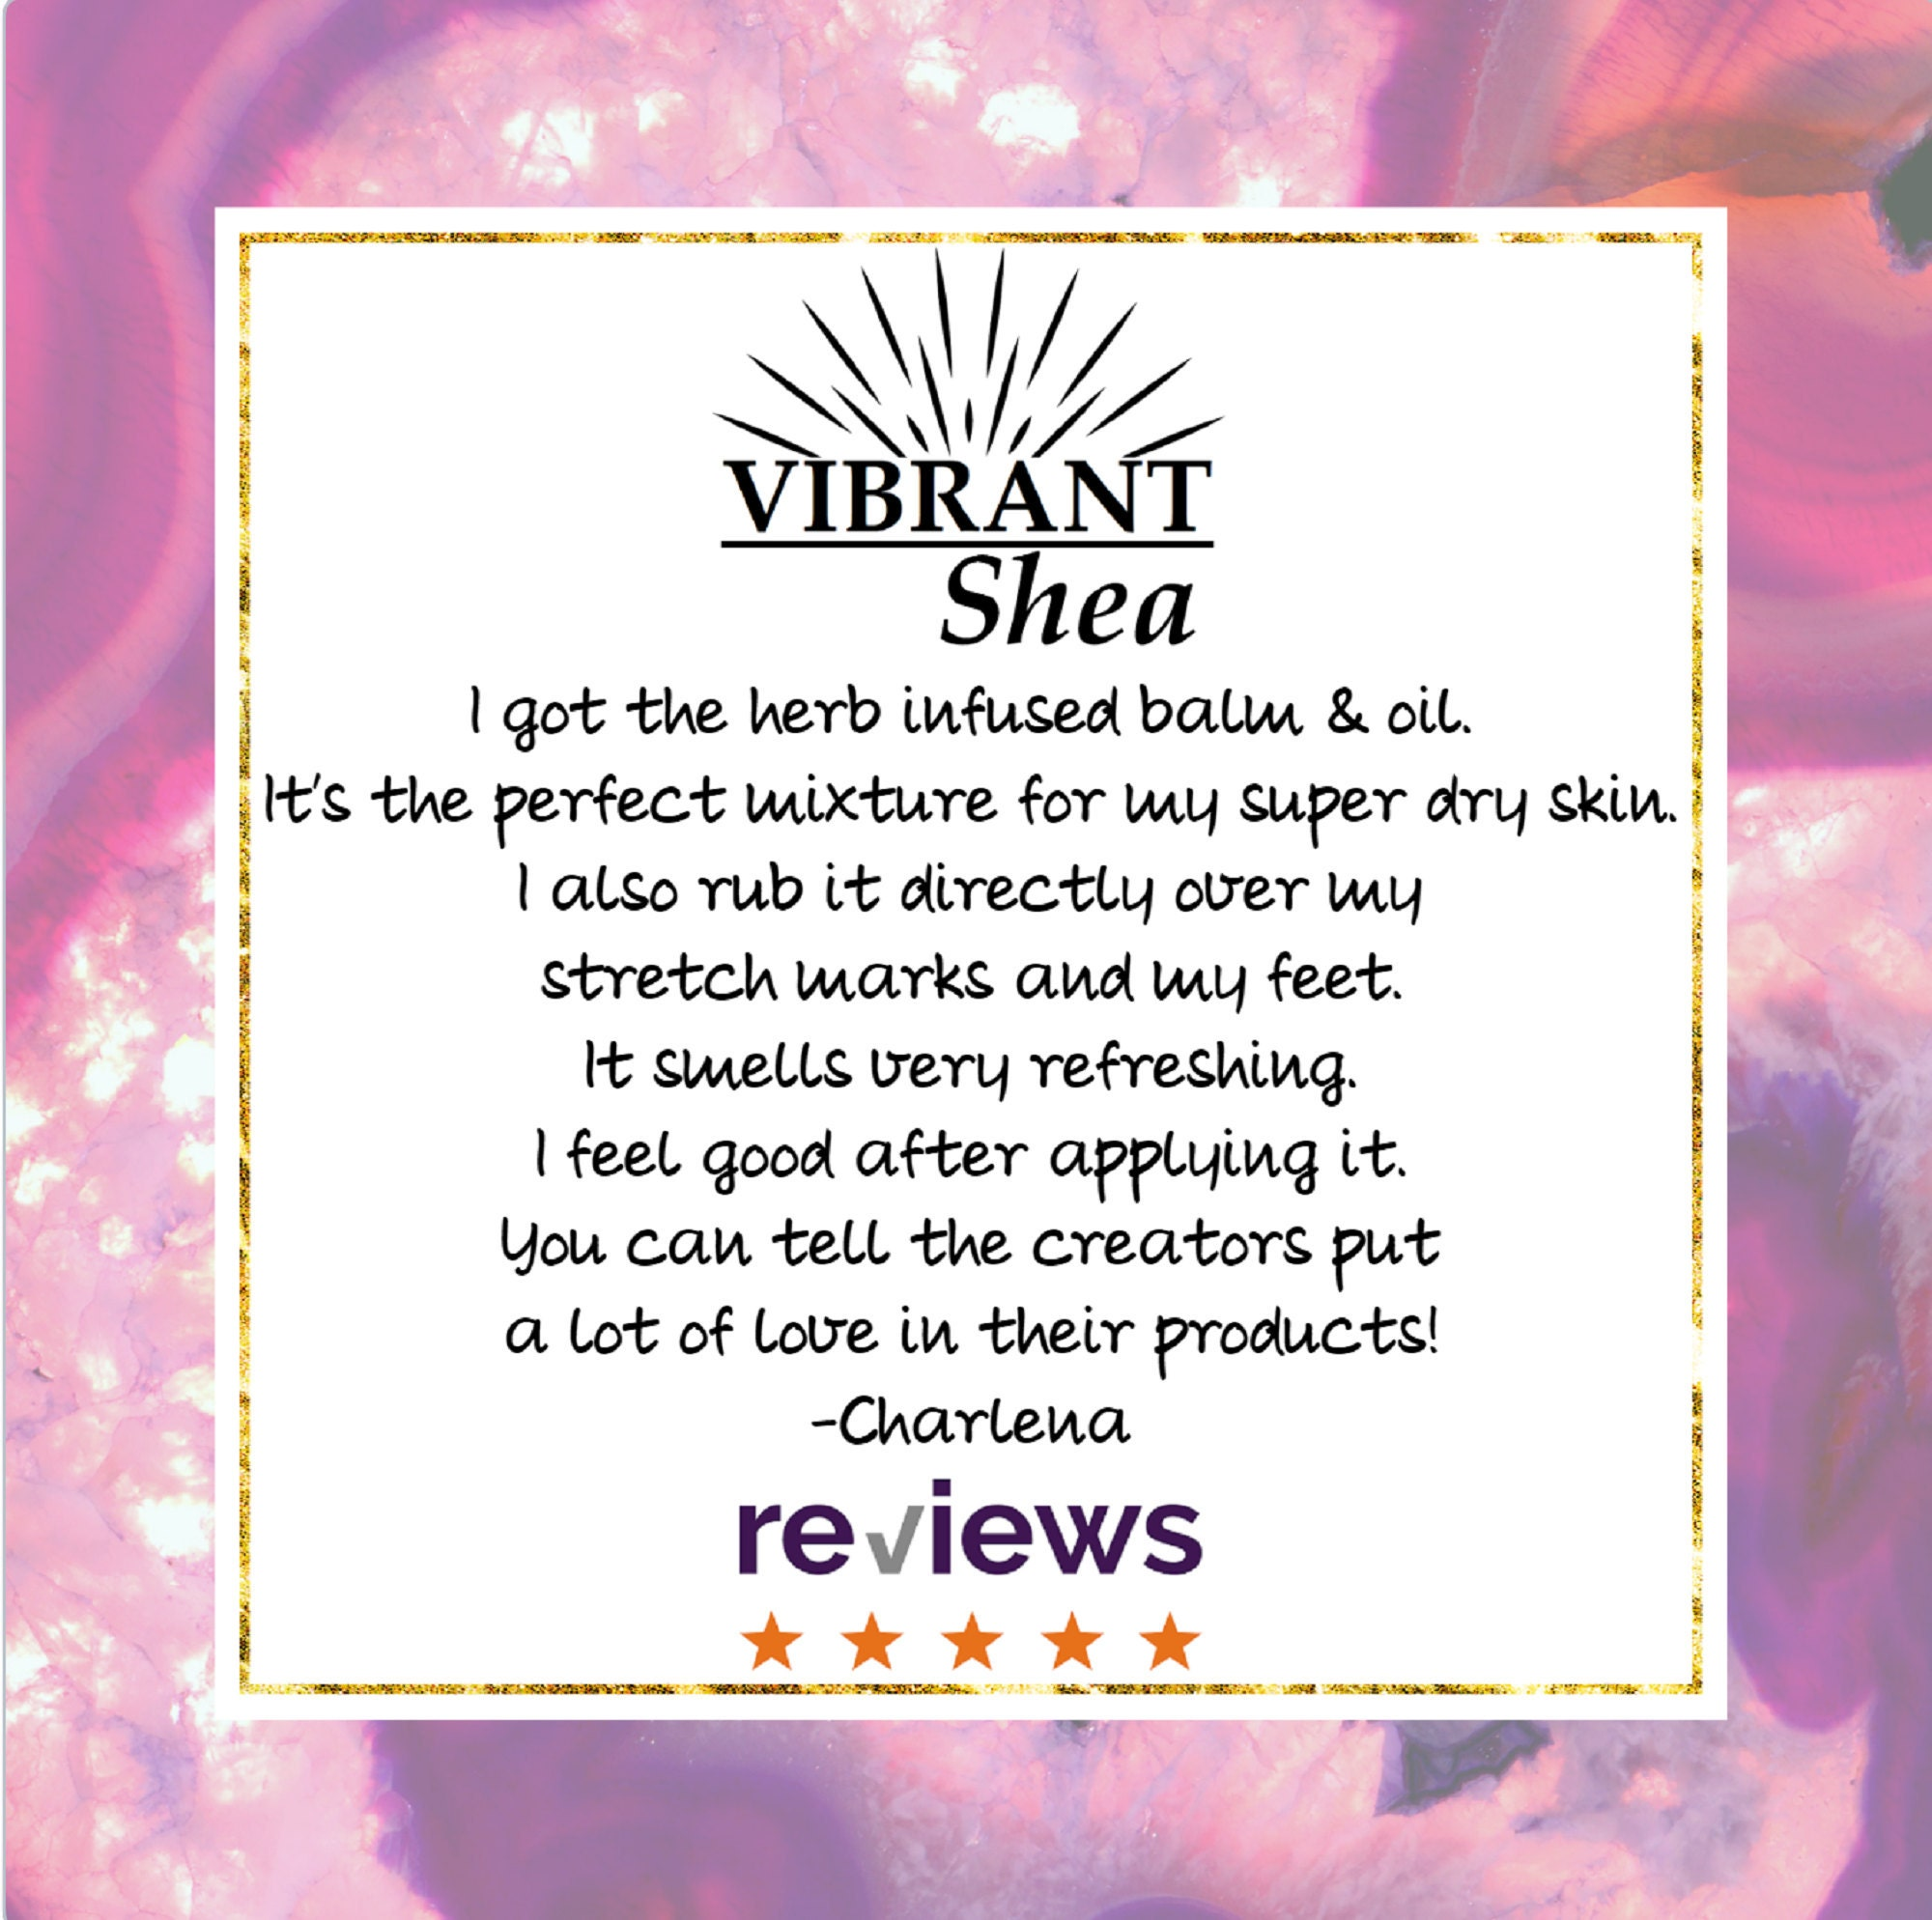 five star review herbal balm vibrant shea co